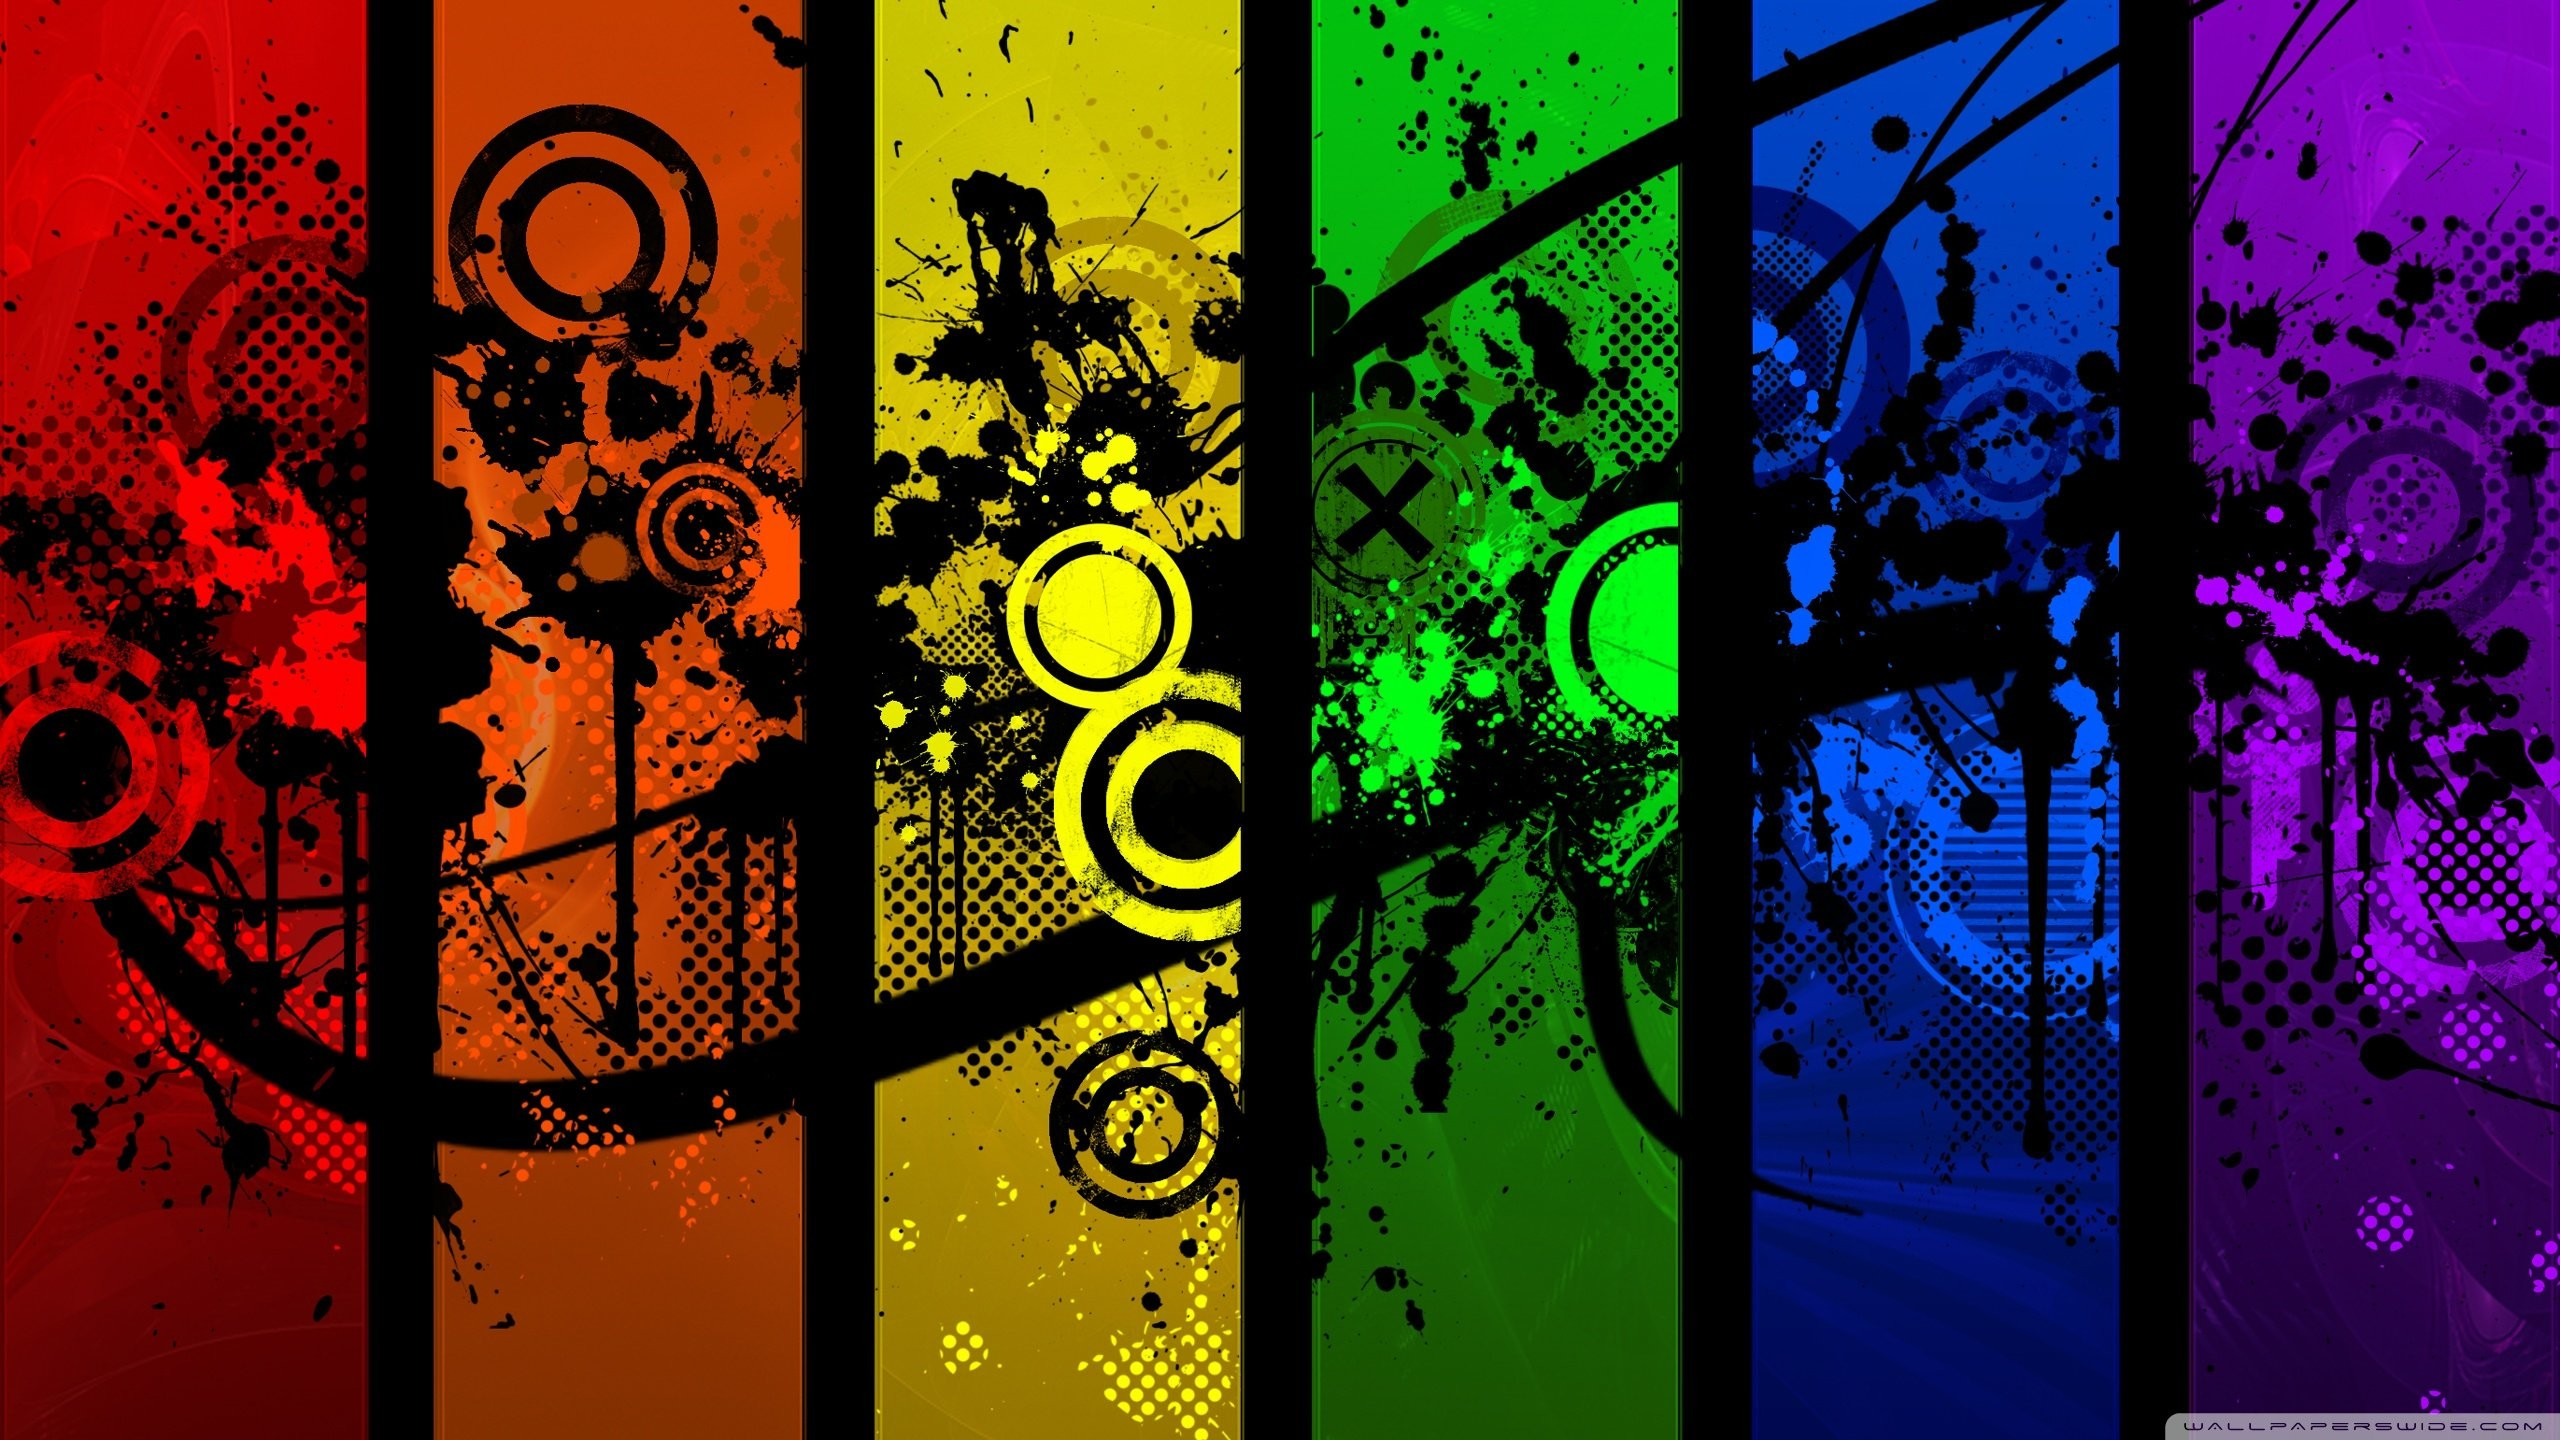 Cool Abstract Art Designs